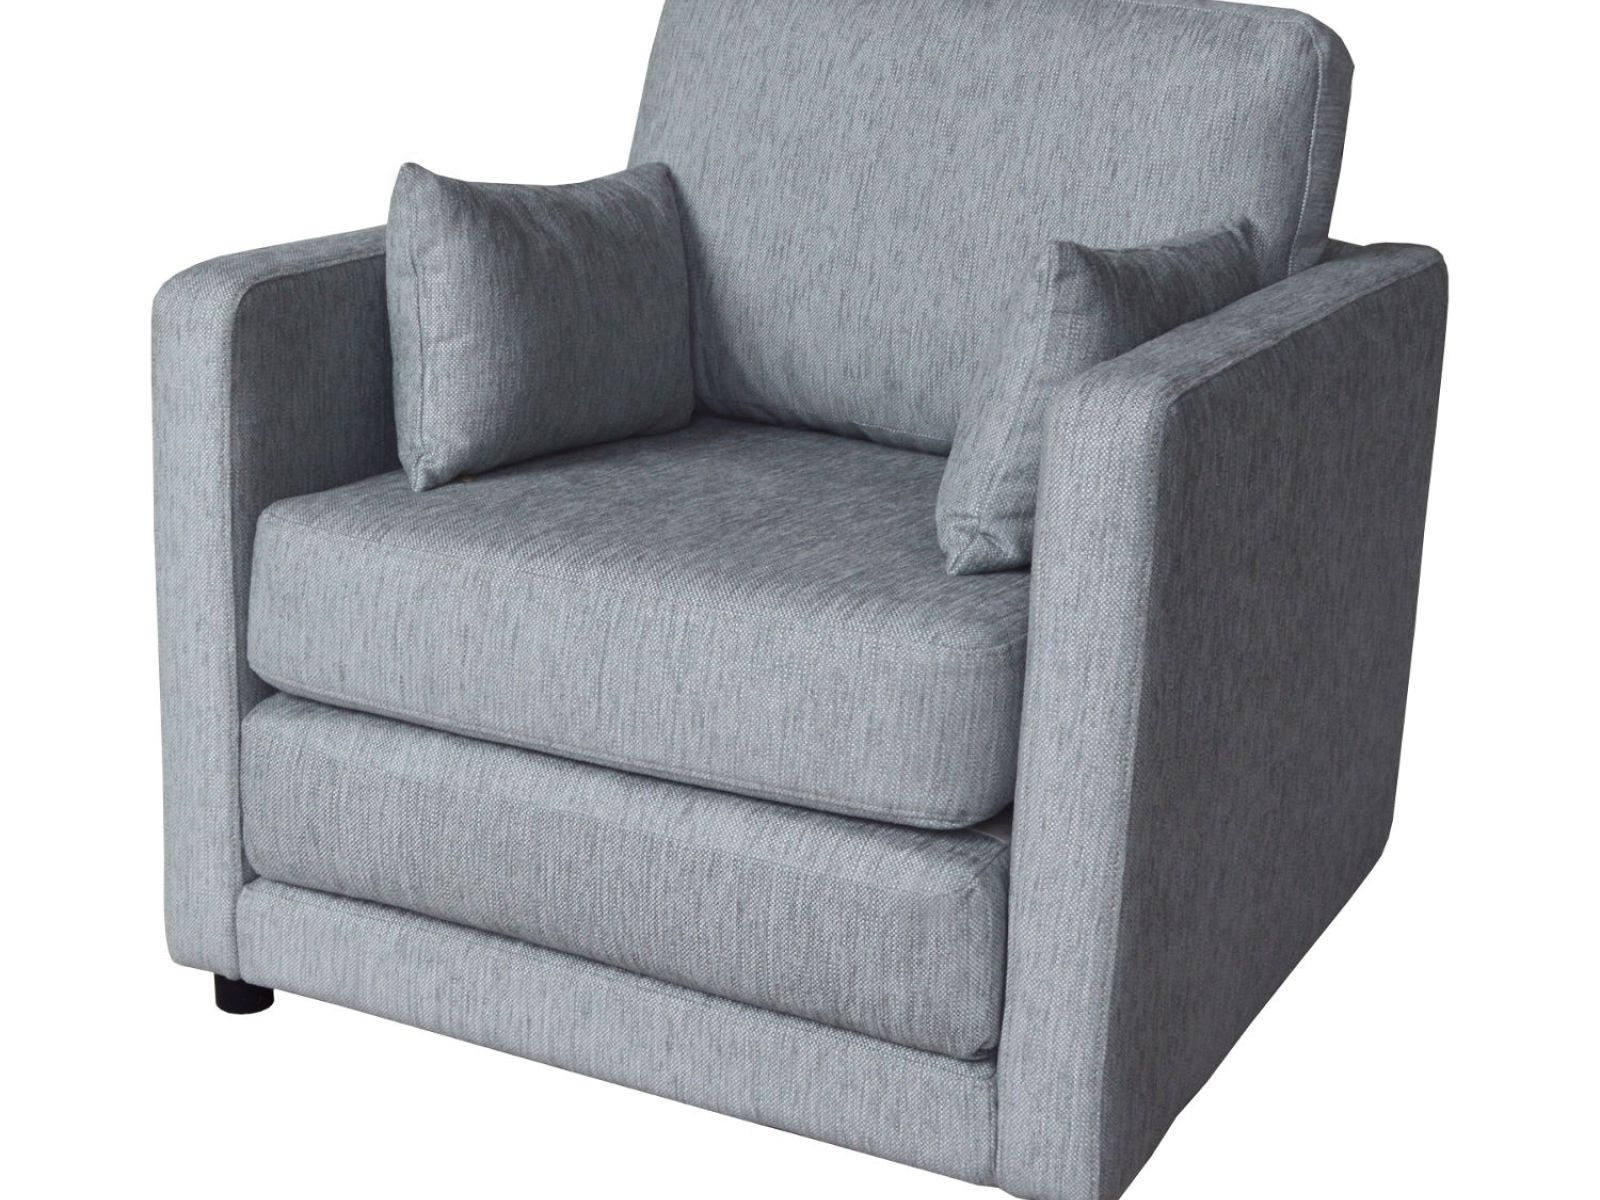 Sofa 39 Fancy Sofa With Sofa Bed Chair About Throughout Single Chair Sofa Bed (Image 11 of 15)